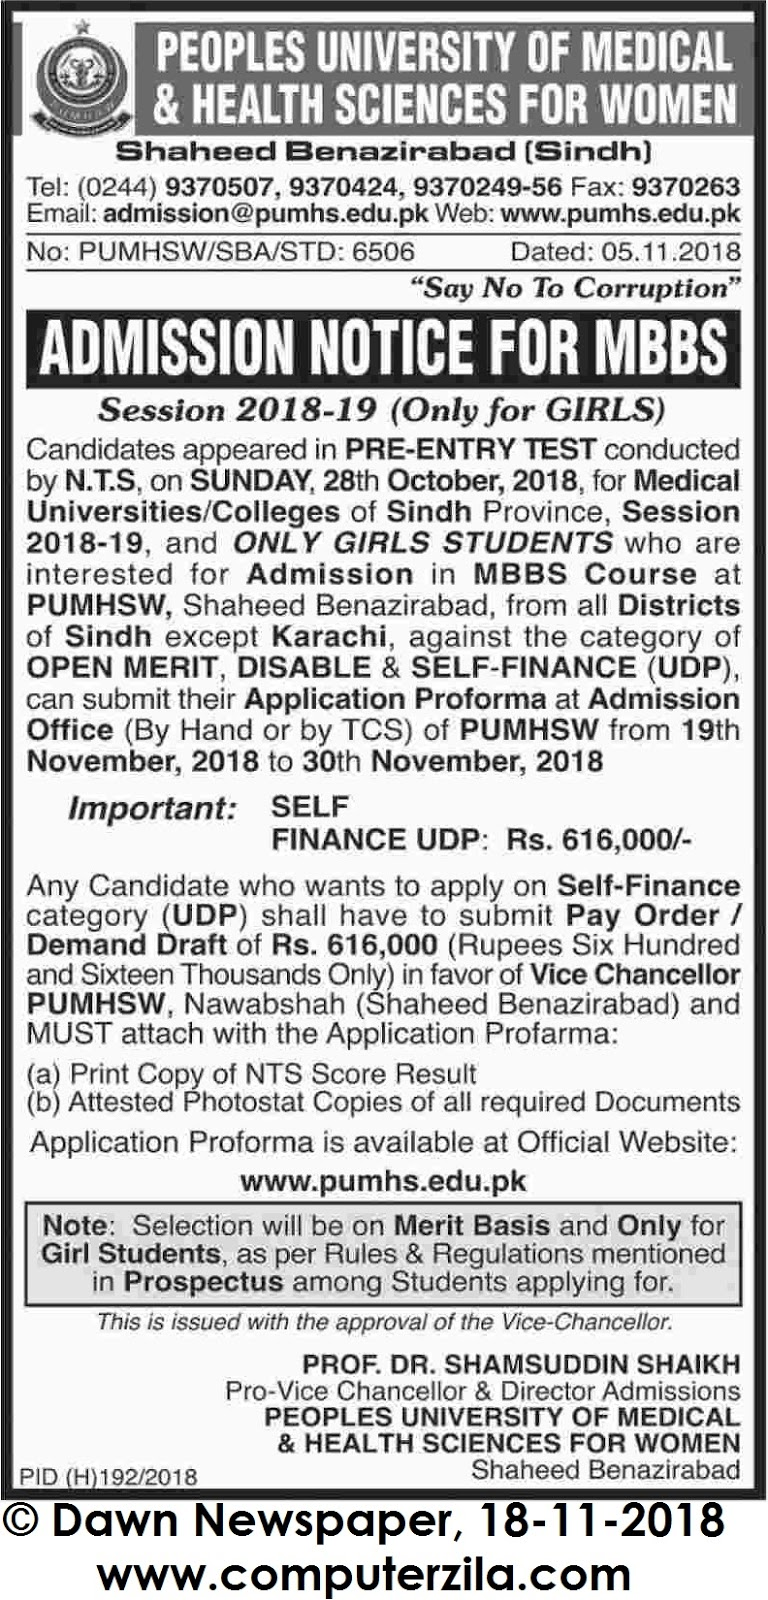 Admissions Open For Spring 2018 At PUMHS Nawabshah Campus